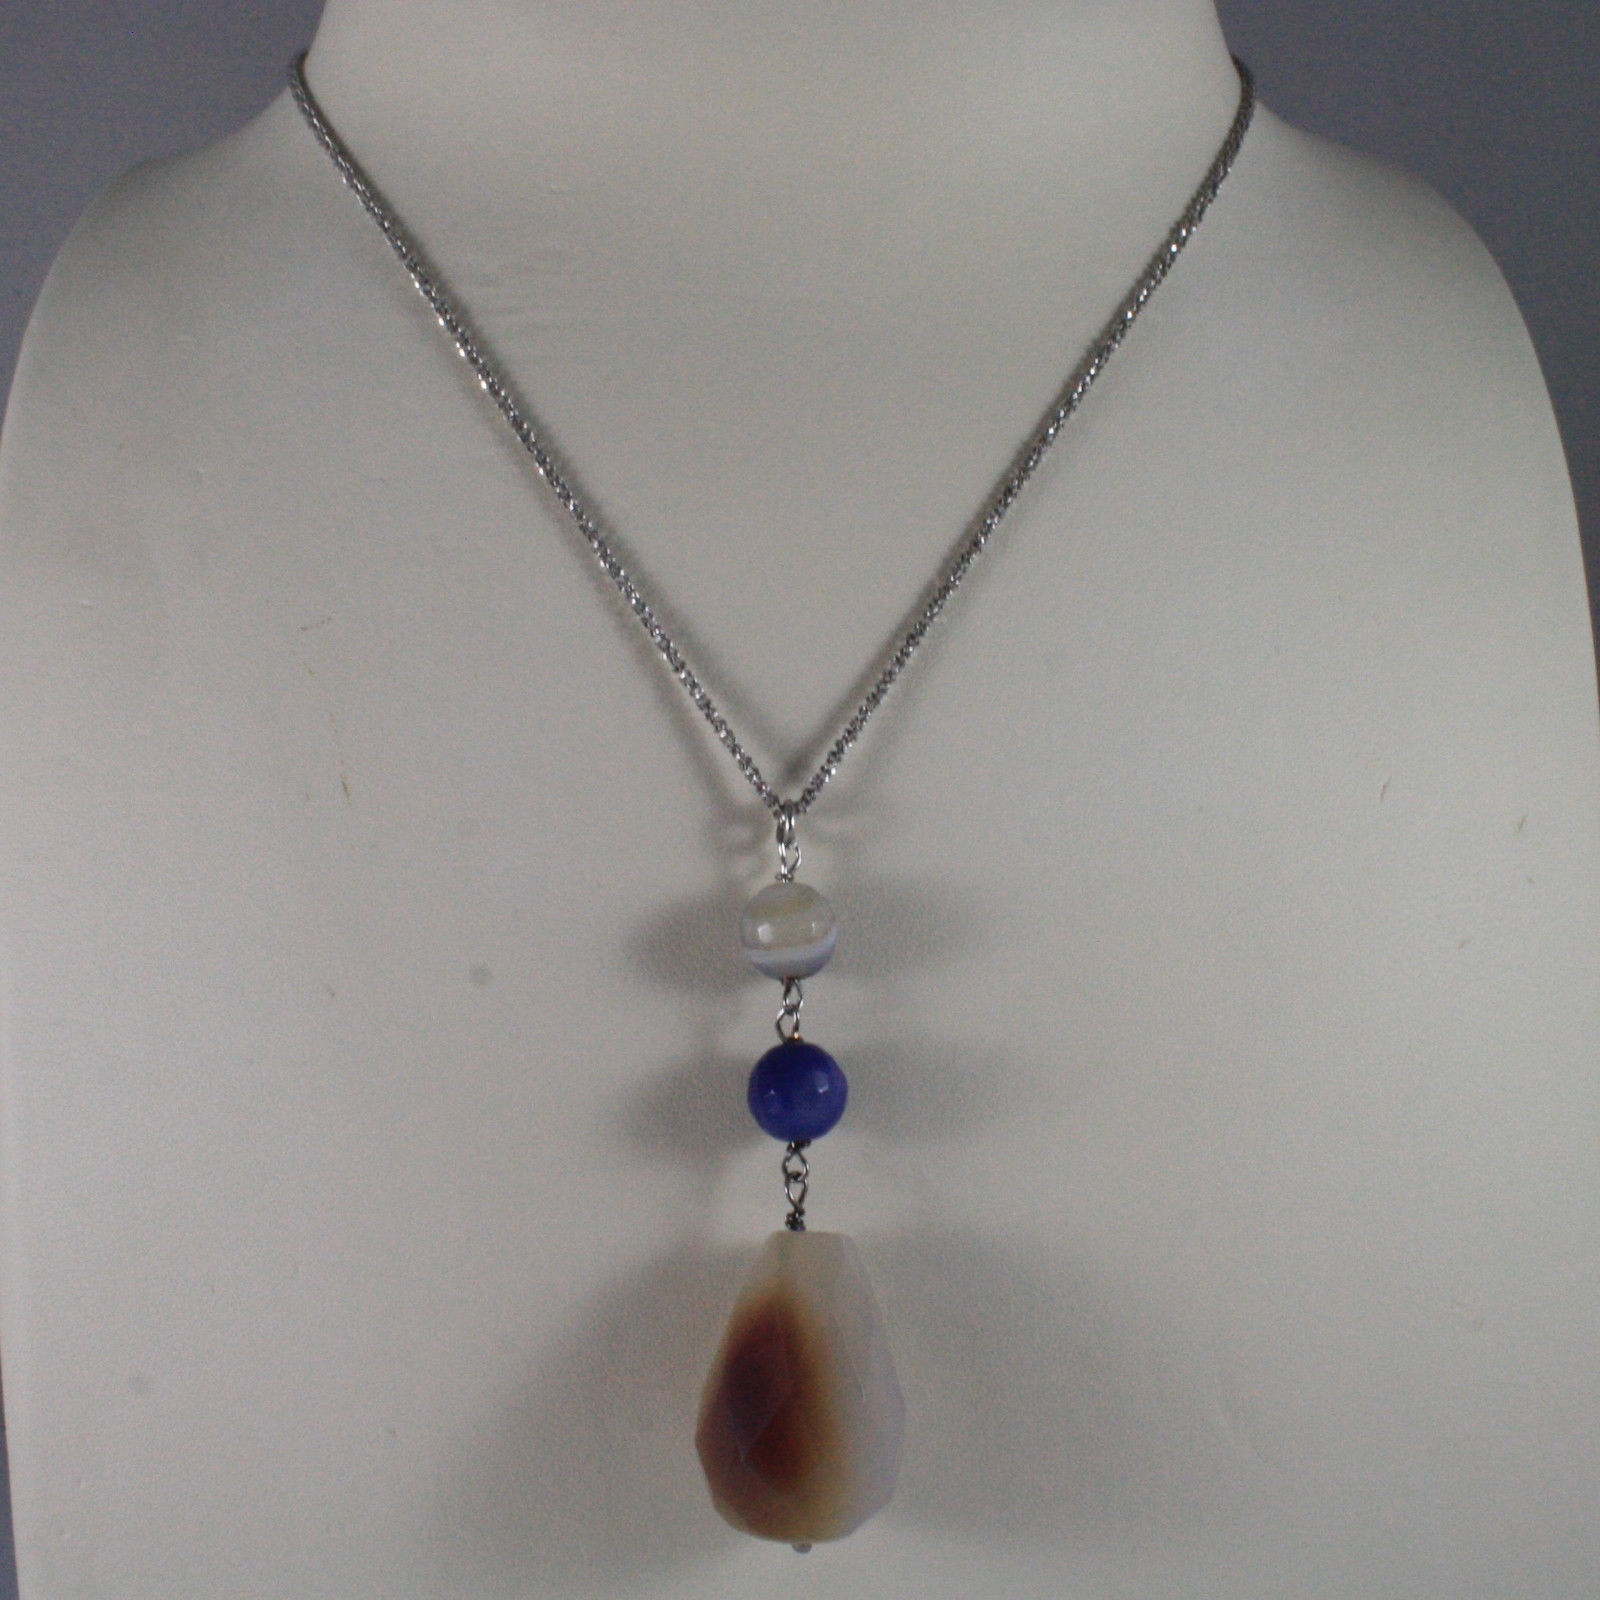 .925 SILVER RHODIUM NECKLACE WITH PURPLE AGATE AND DROP OF QUARTZ